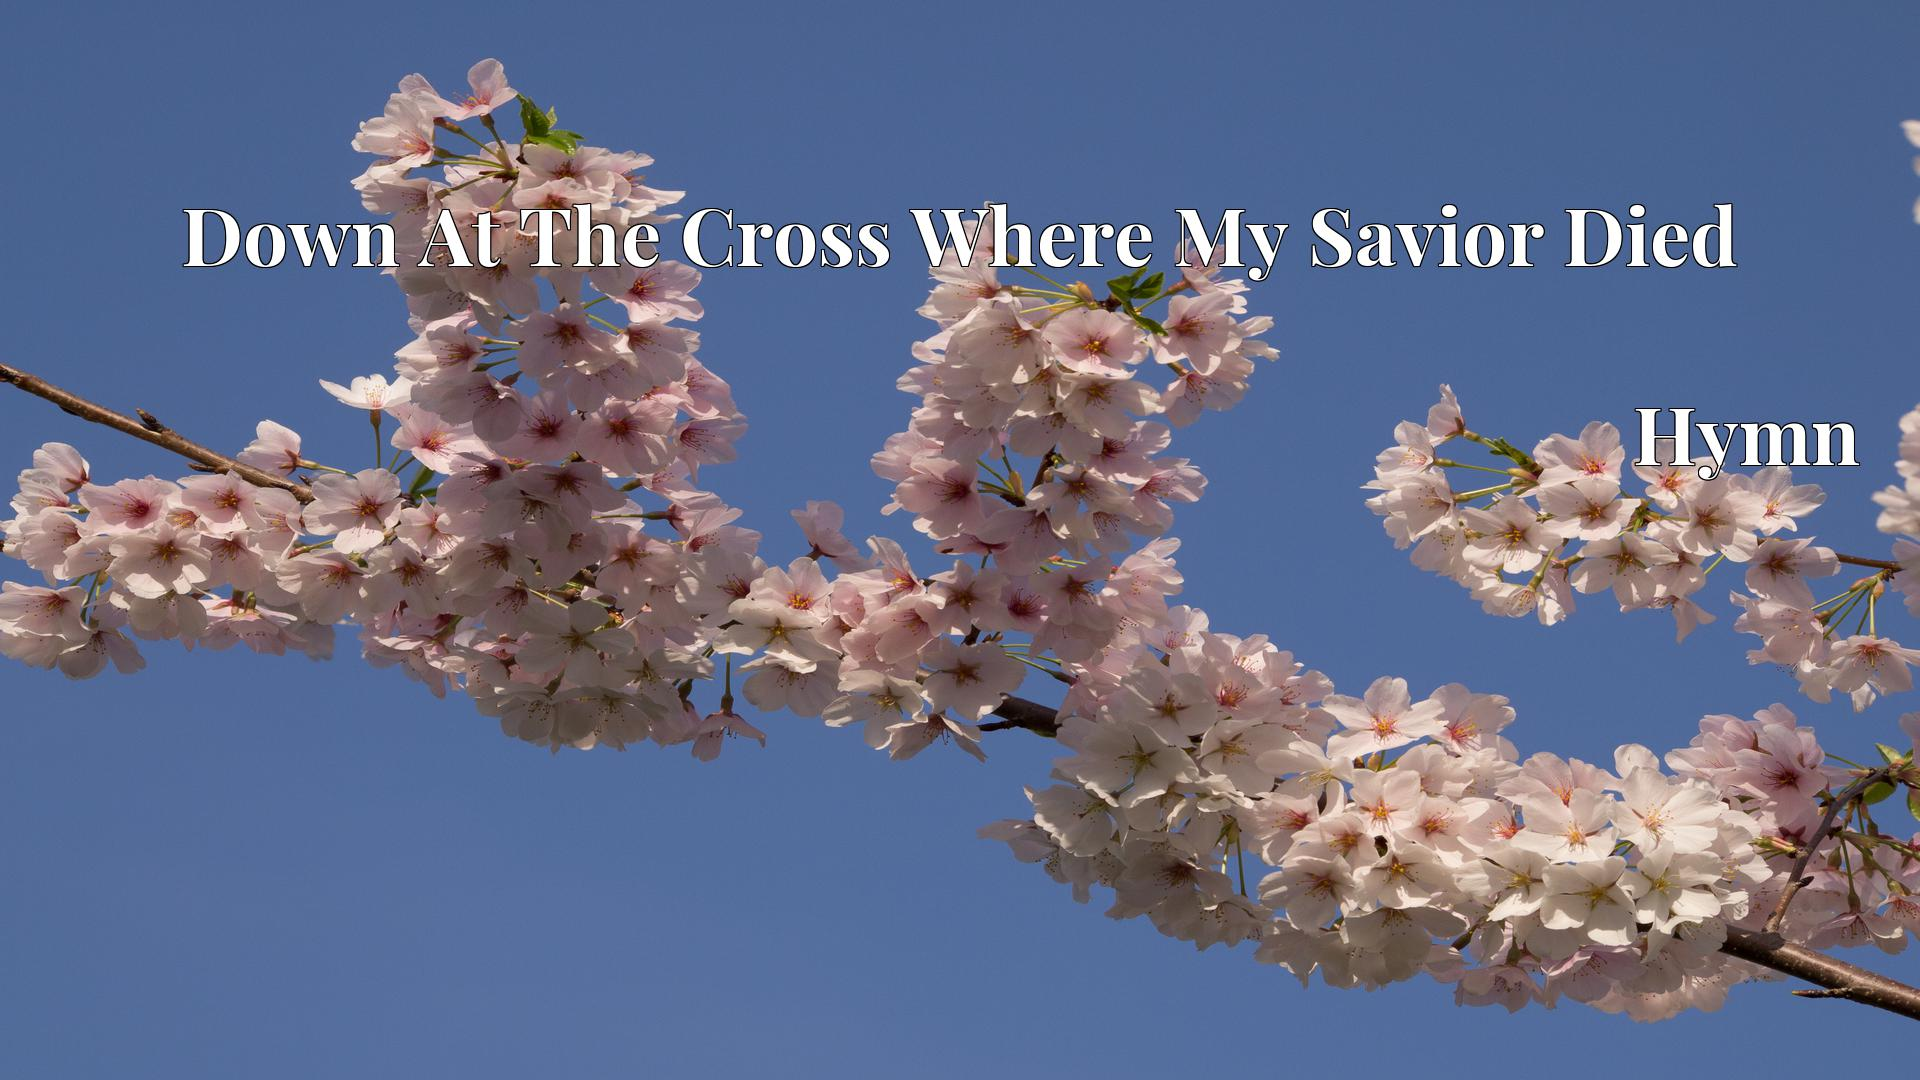 Down At The Cross Where My Savior Died - Hymn